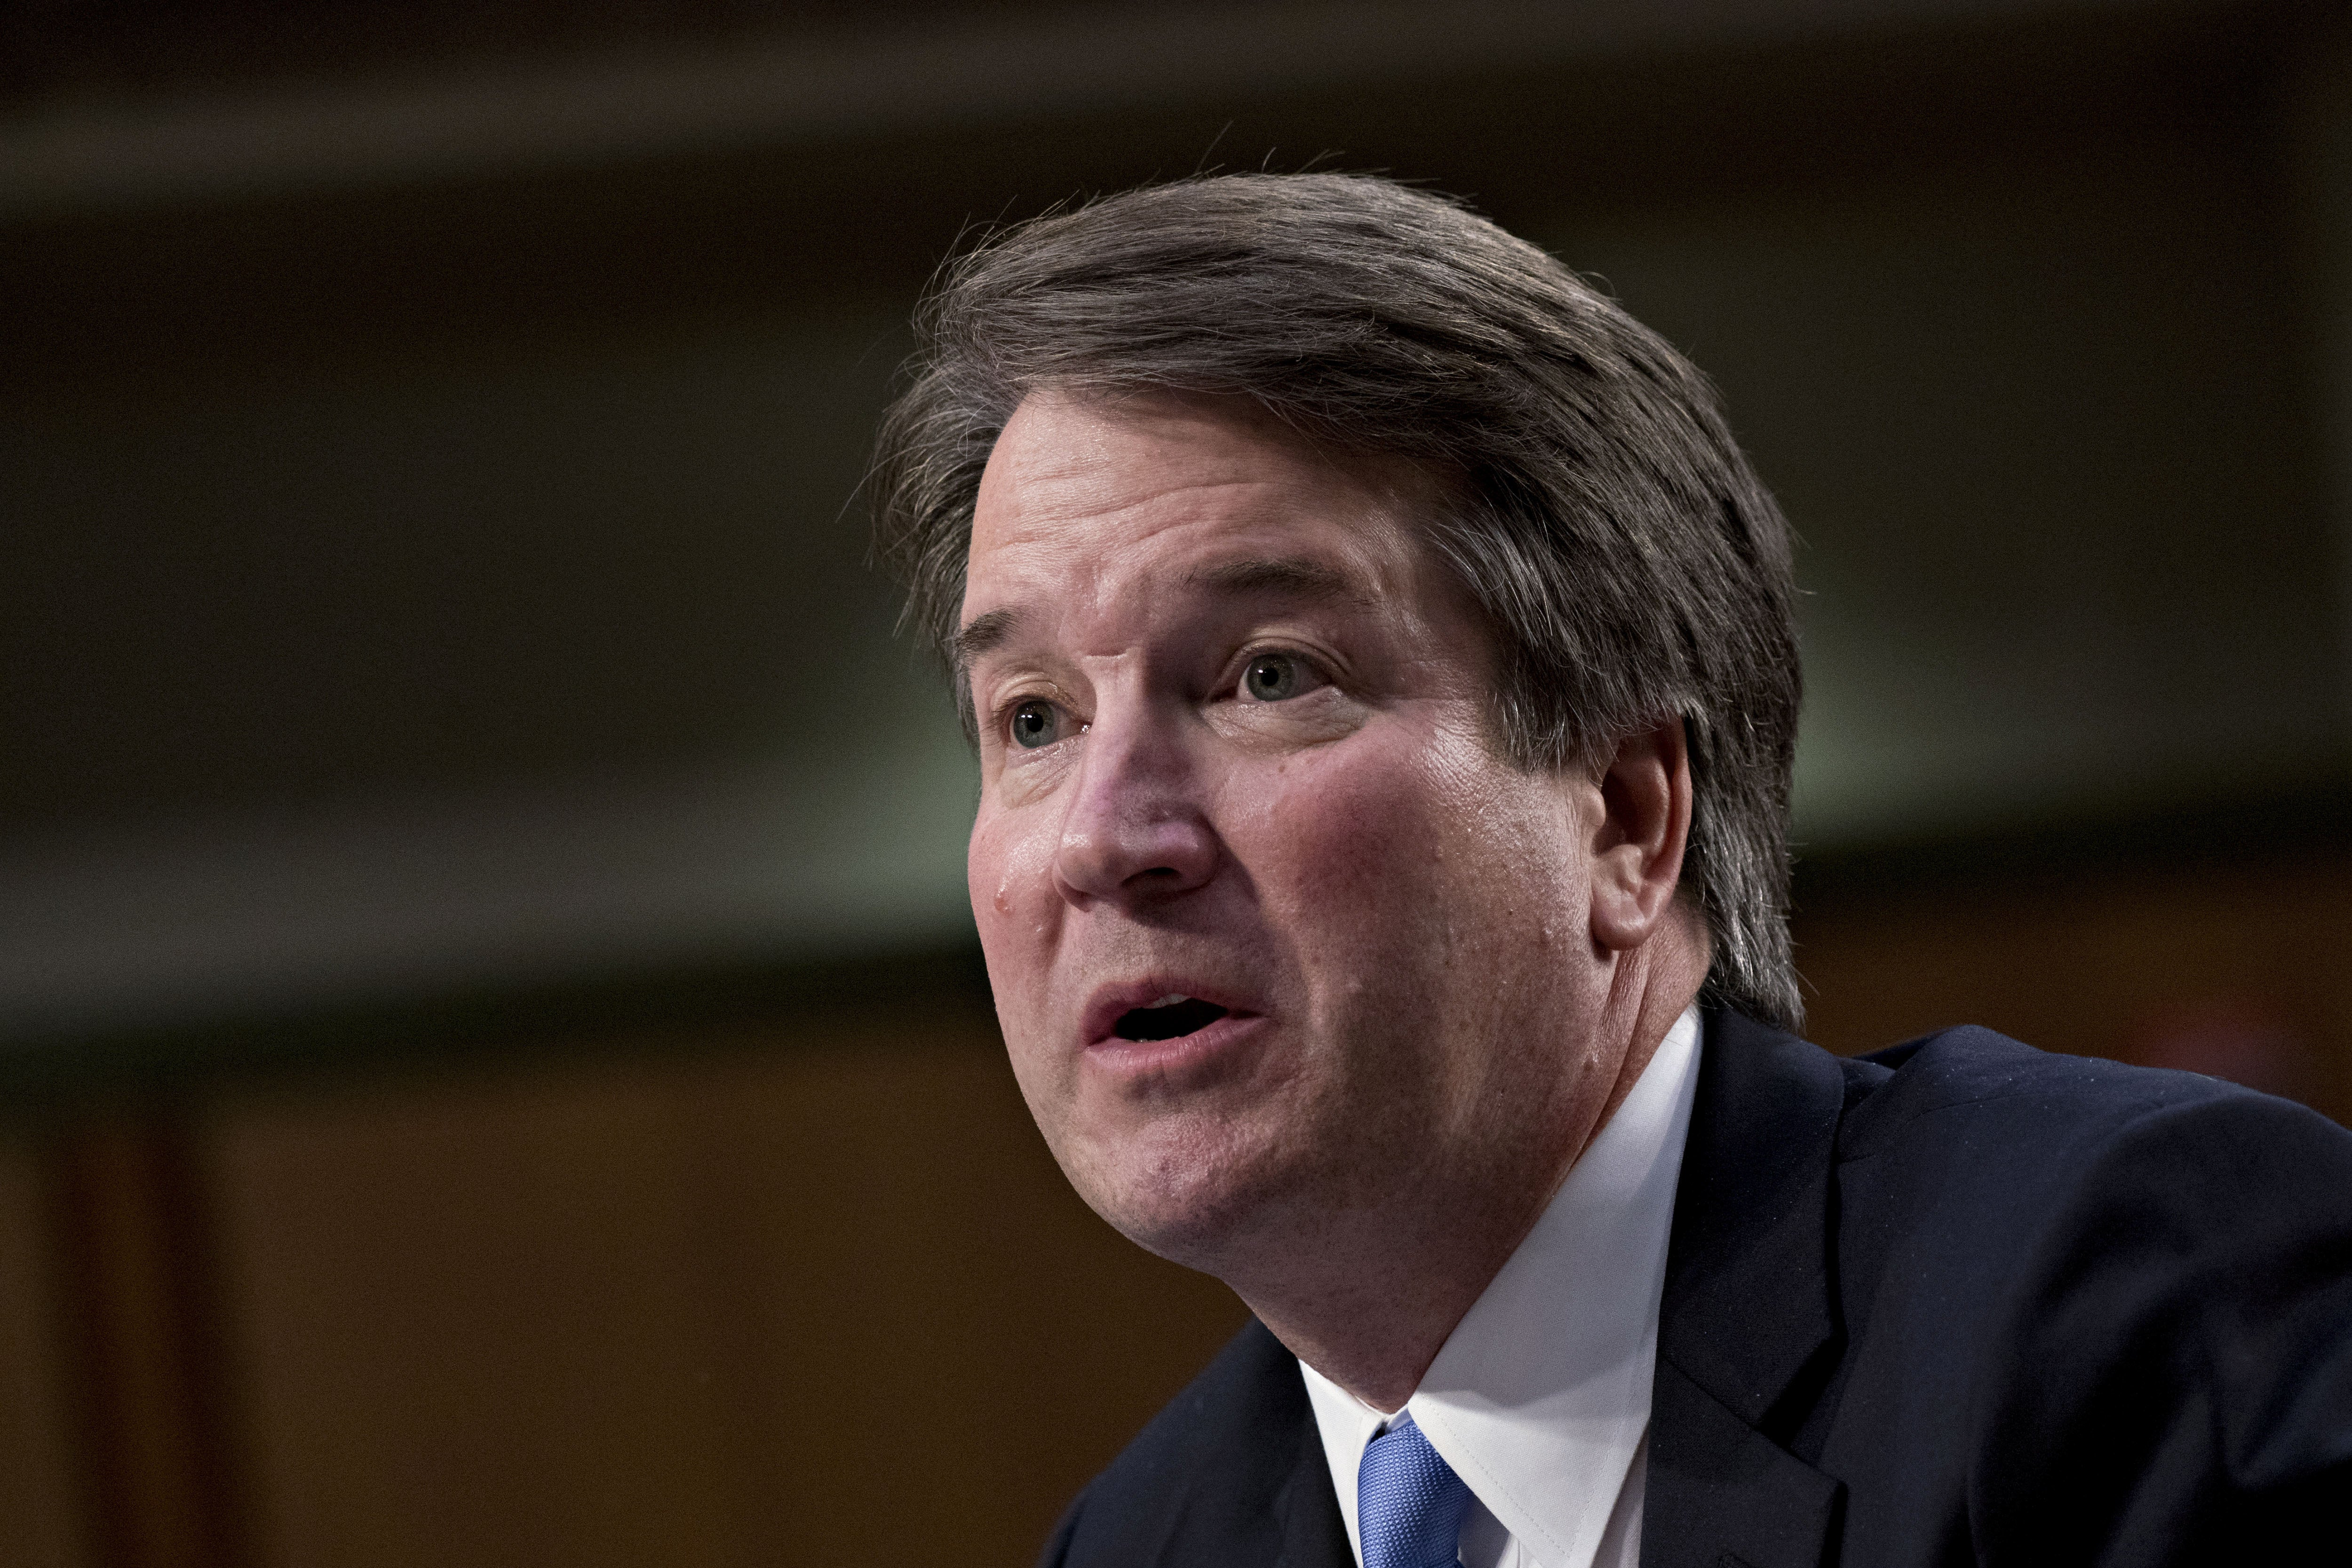 Supreme Court Nominee Brett Kavanaugh Hit With New Allegations of Sexual Misconduct